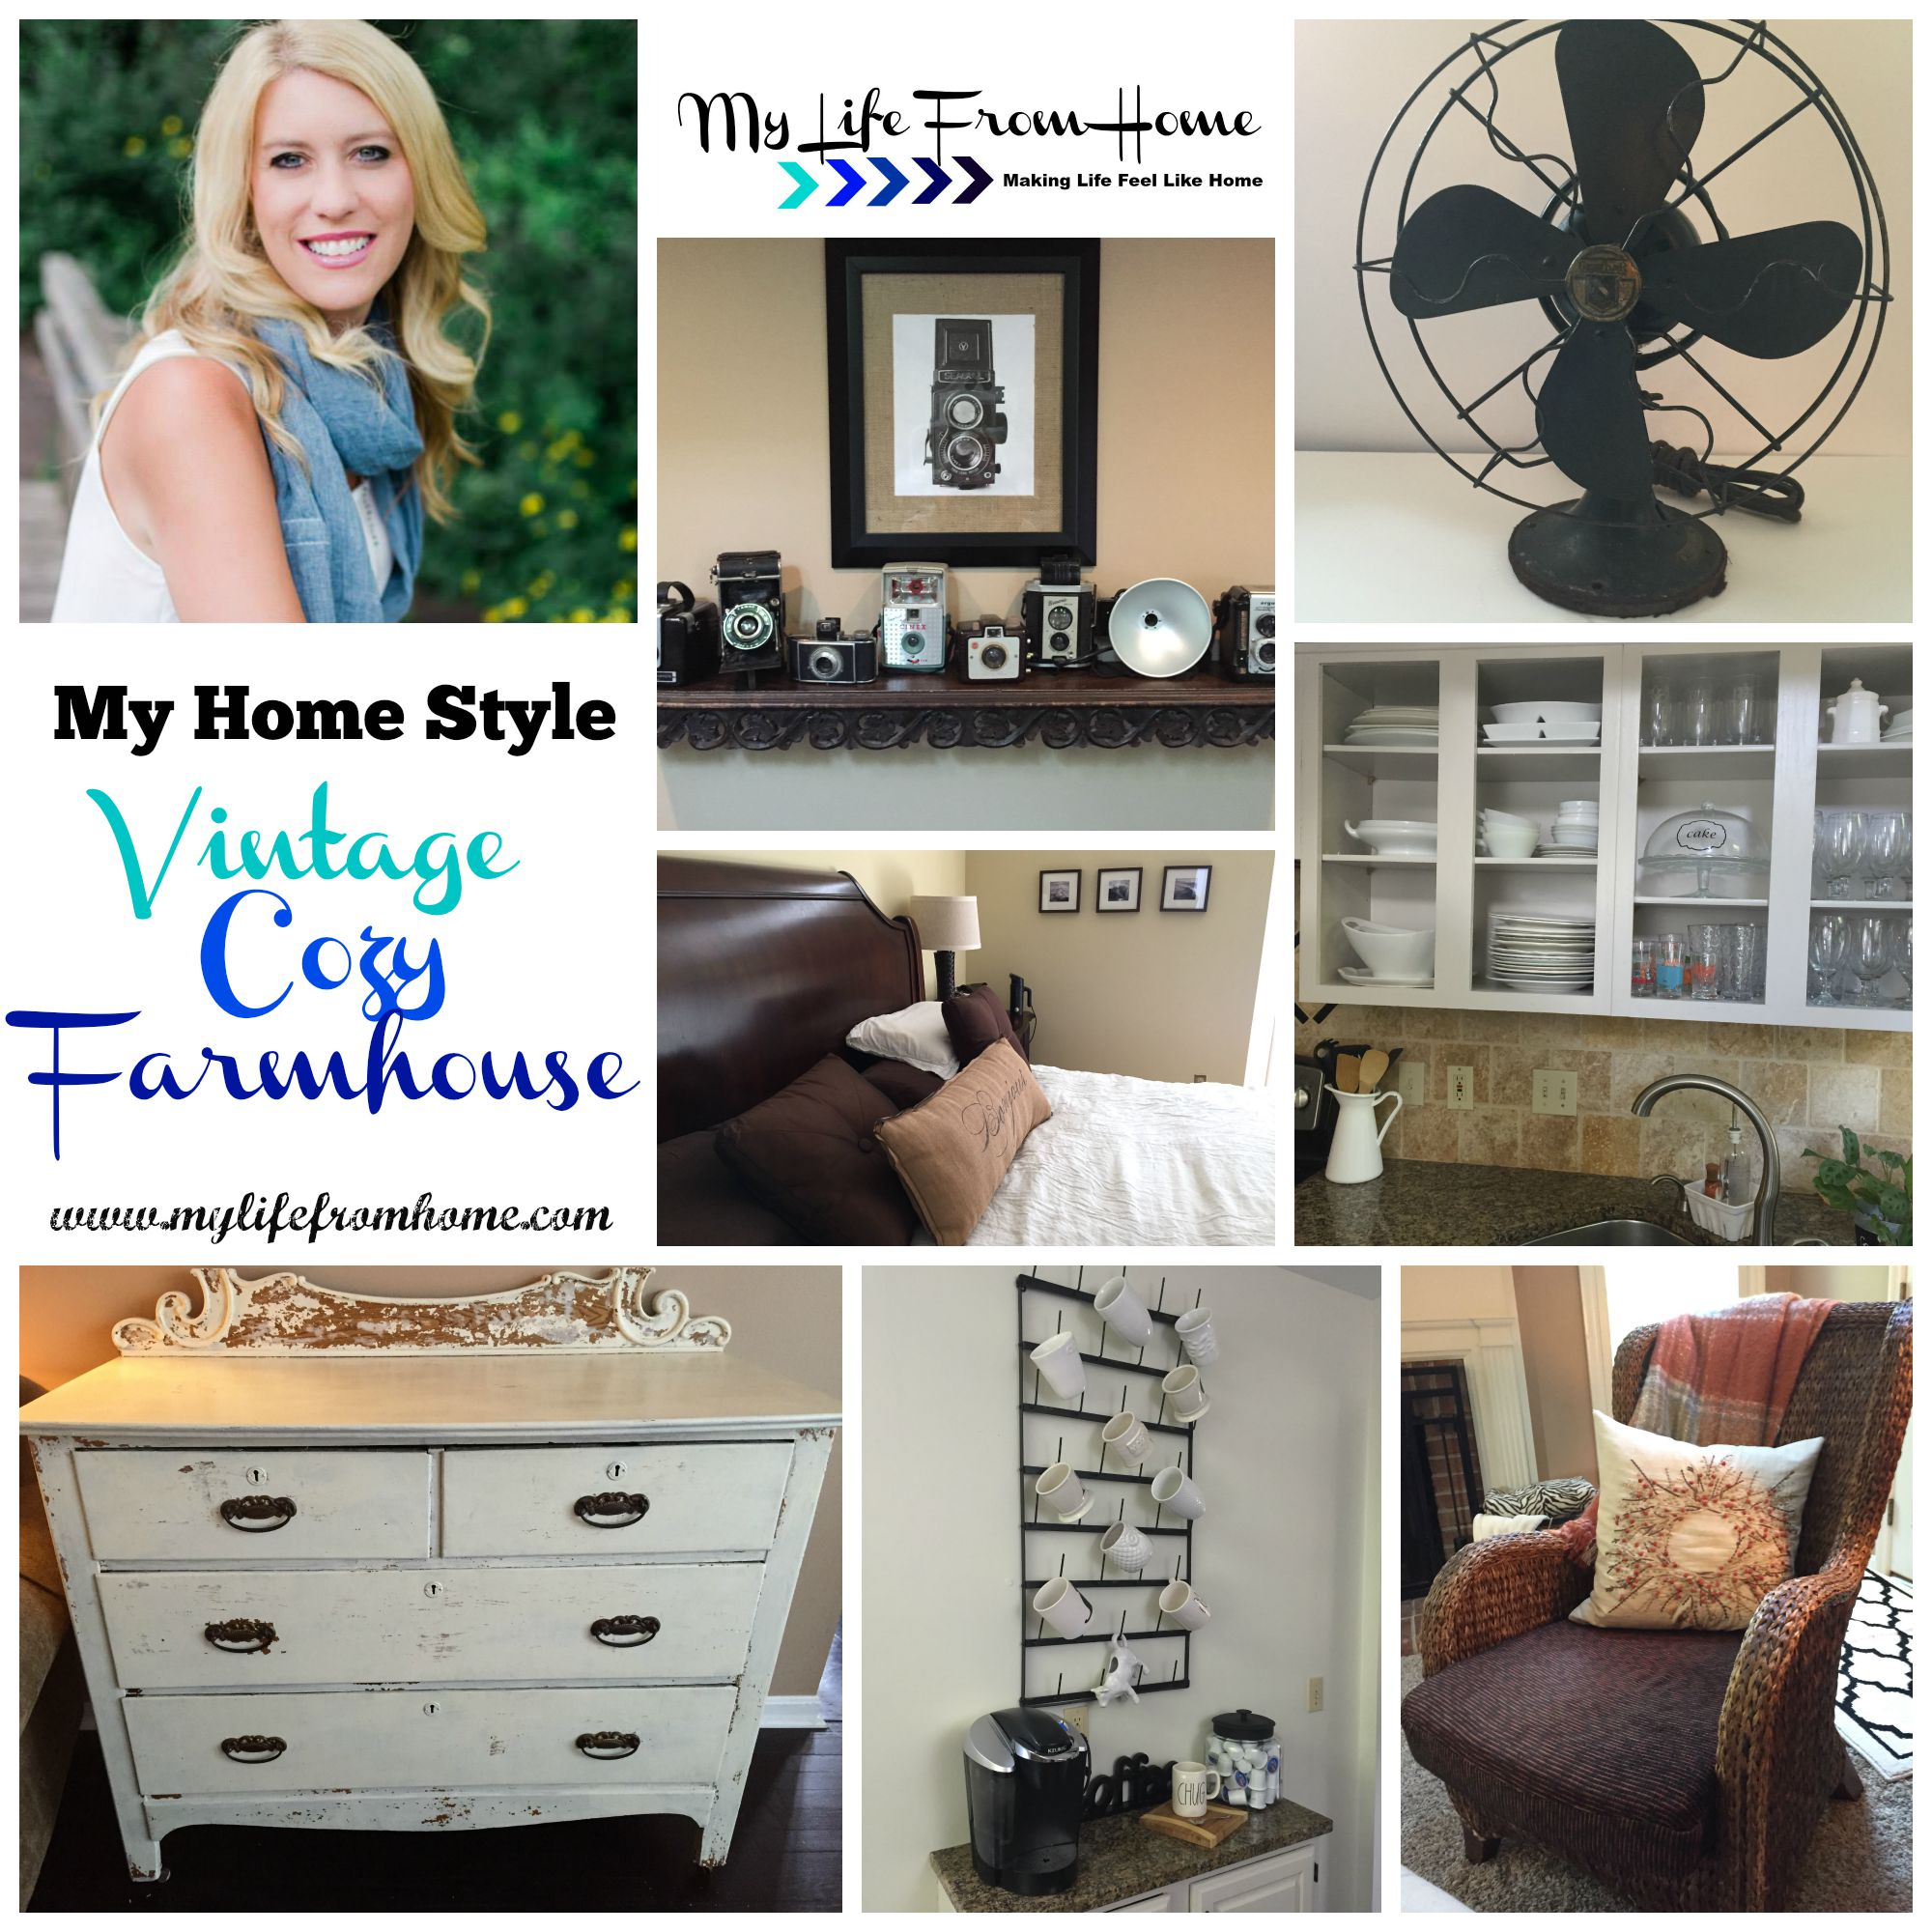 My Home Style by www.mylifefromhome.com